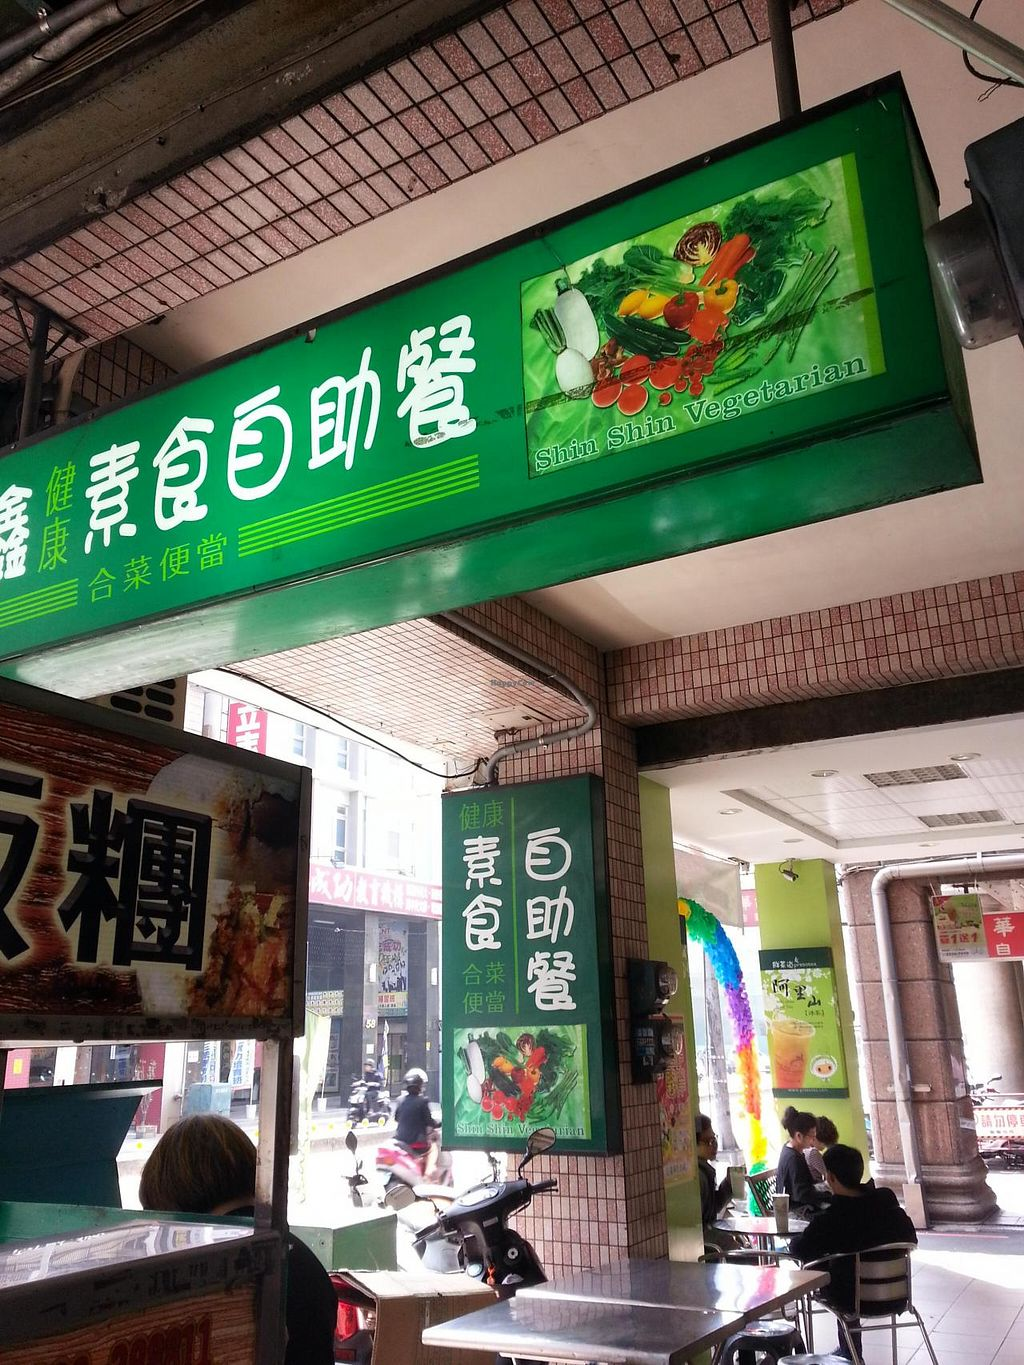 """Photo of Shin Shin Restaurant  by <a href=""""/members/profile/Nikki1801"""">Nikki1801</a> <br/>signage! <br/> March 21, 2015  - <a href='/contact/abuse/image/56491/96369'>Report</a>"""